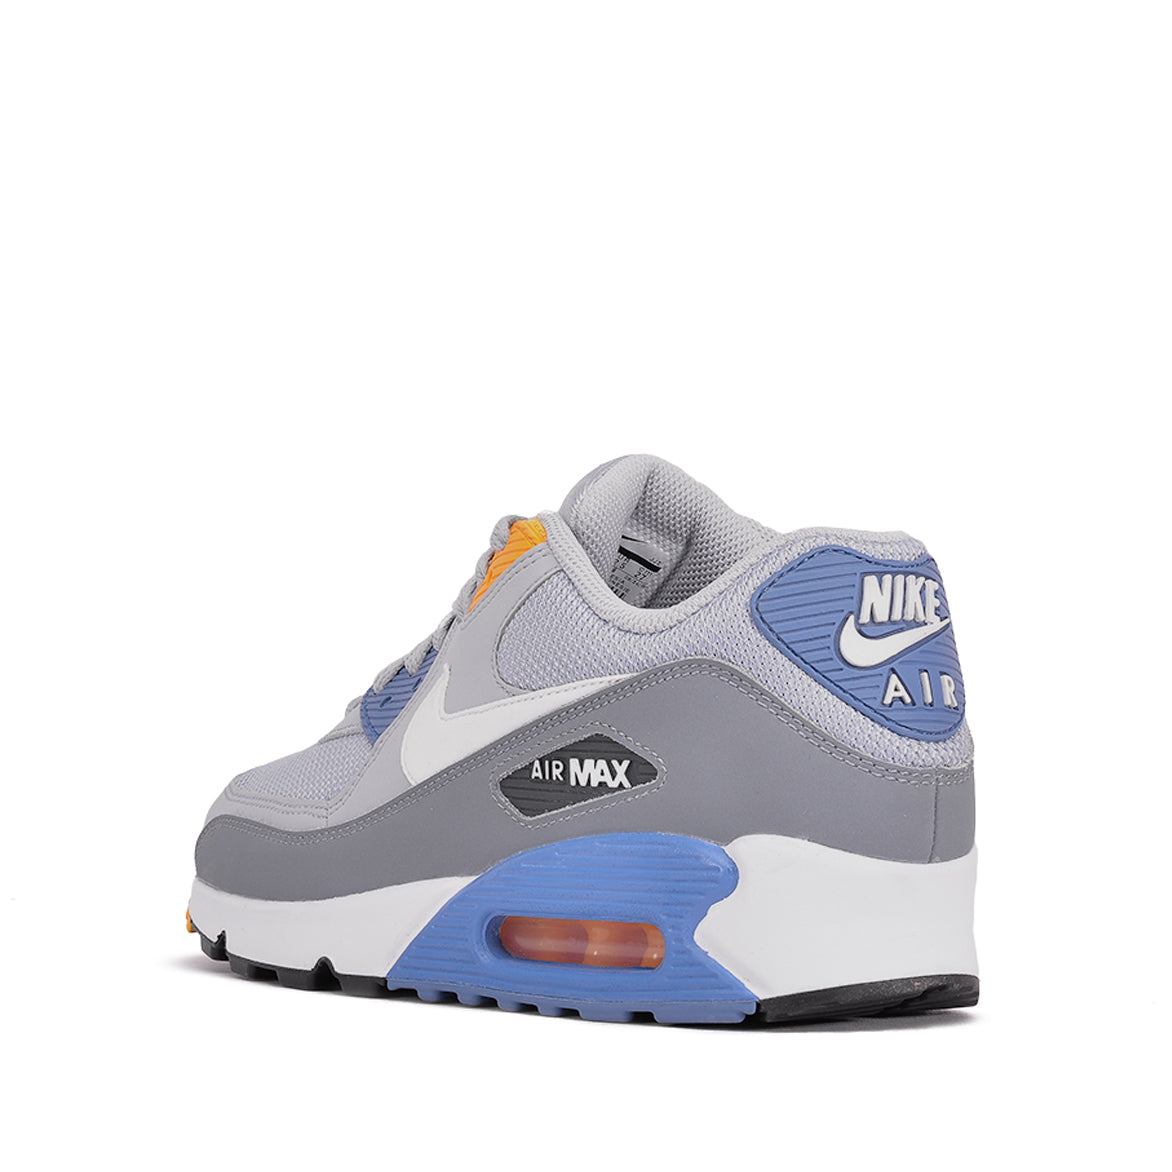 ... AIR MAX 90 ESSENTIAL - WOLF GREY   WHITE   INDIGO STORM ... 7cf37c065710a